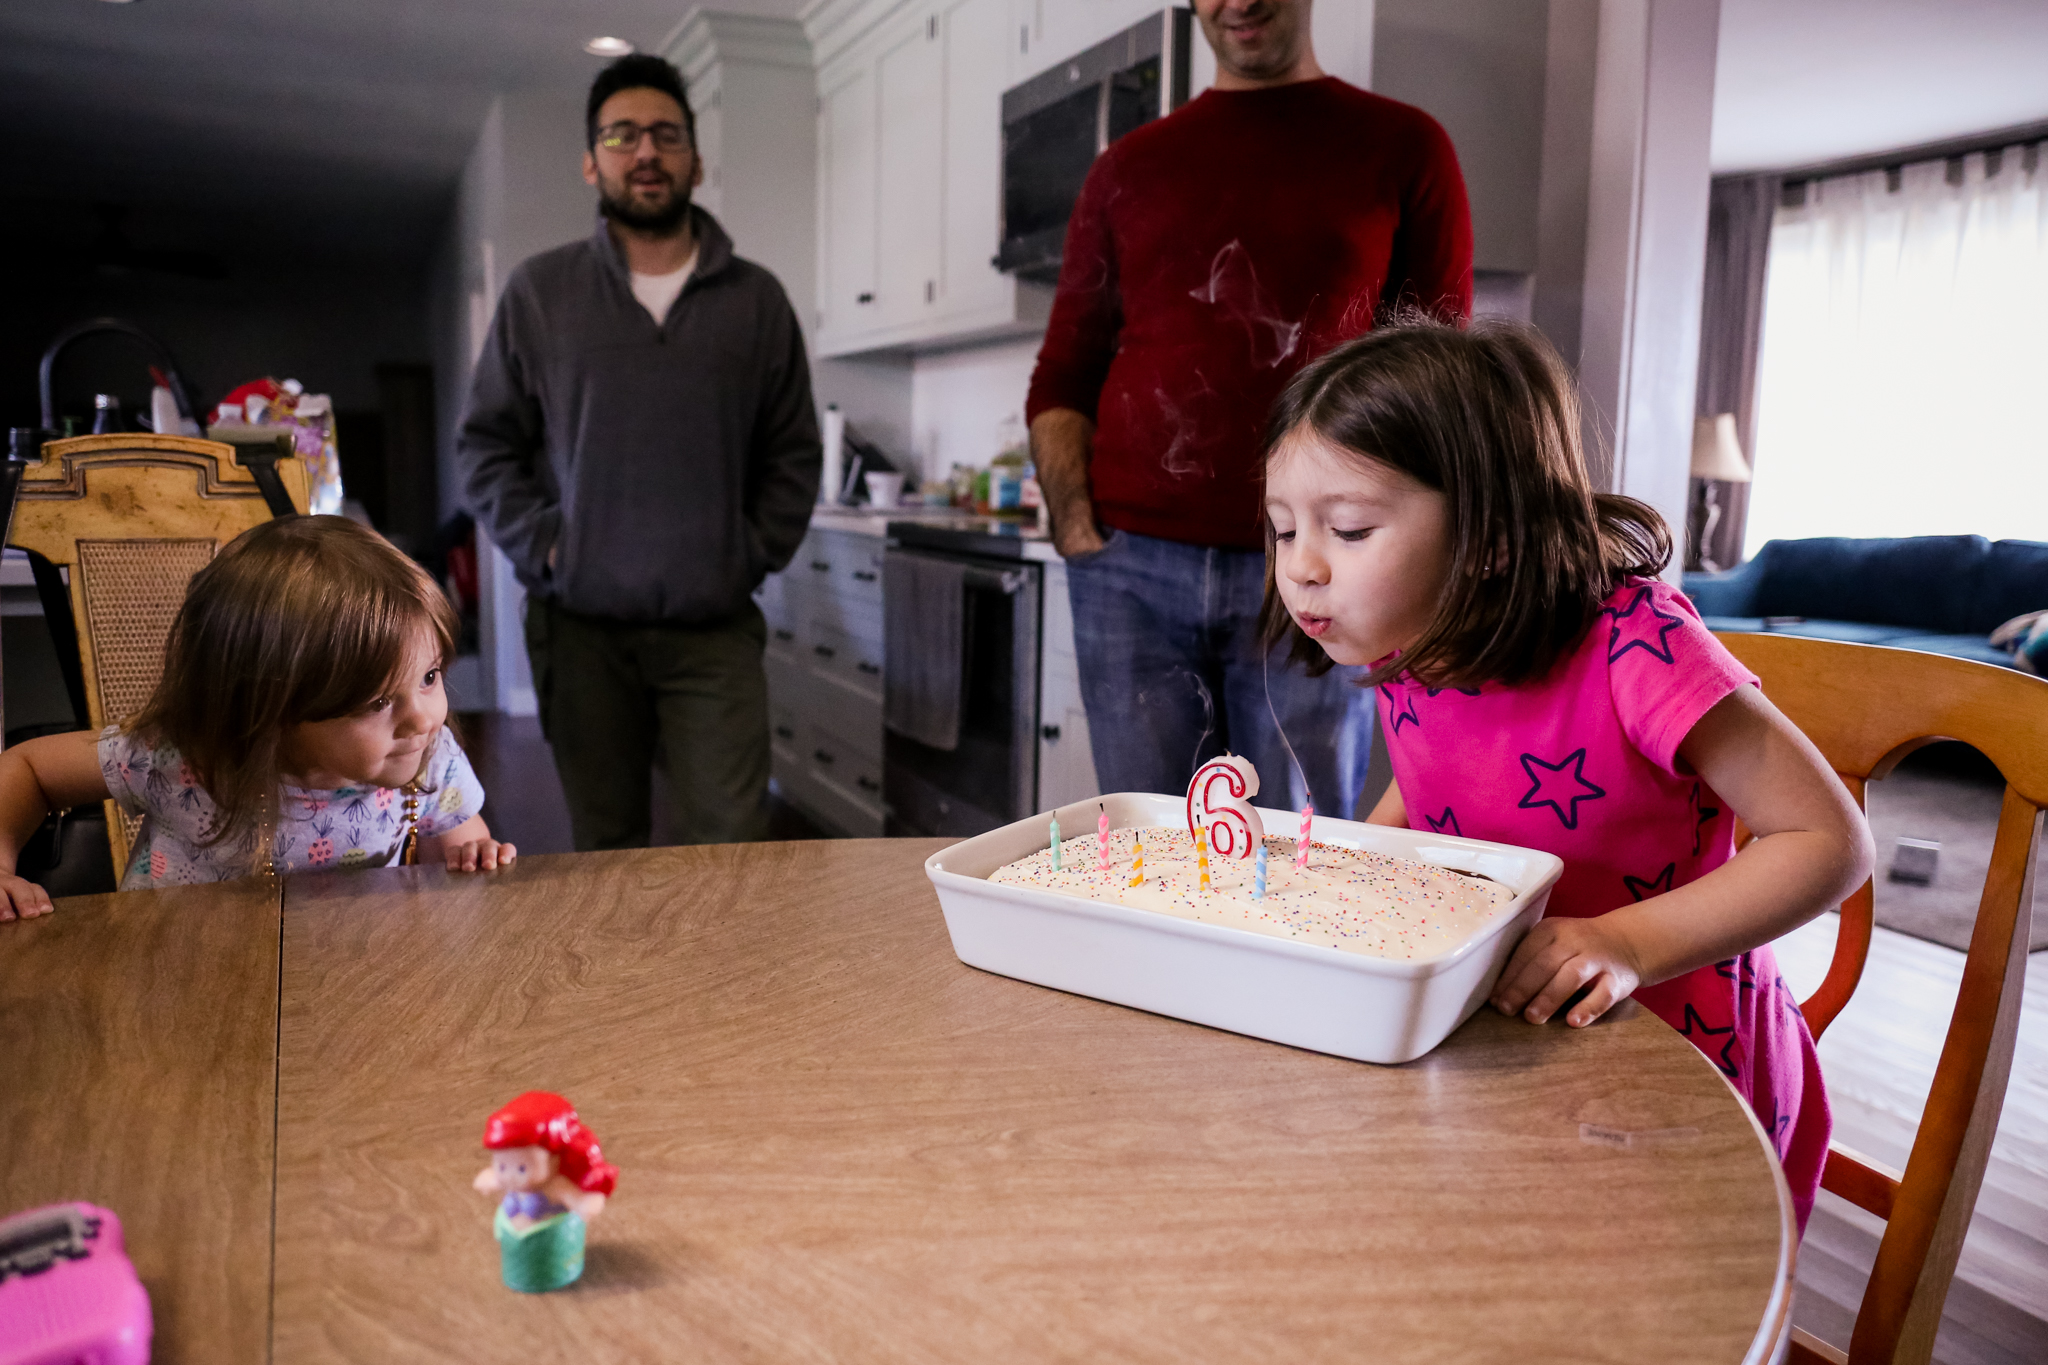 Blowing out the candles on her birthday cake! An at home party in Macungie, PA.